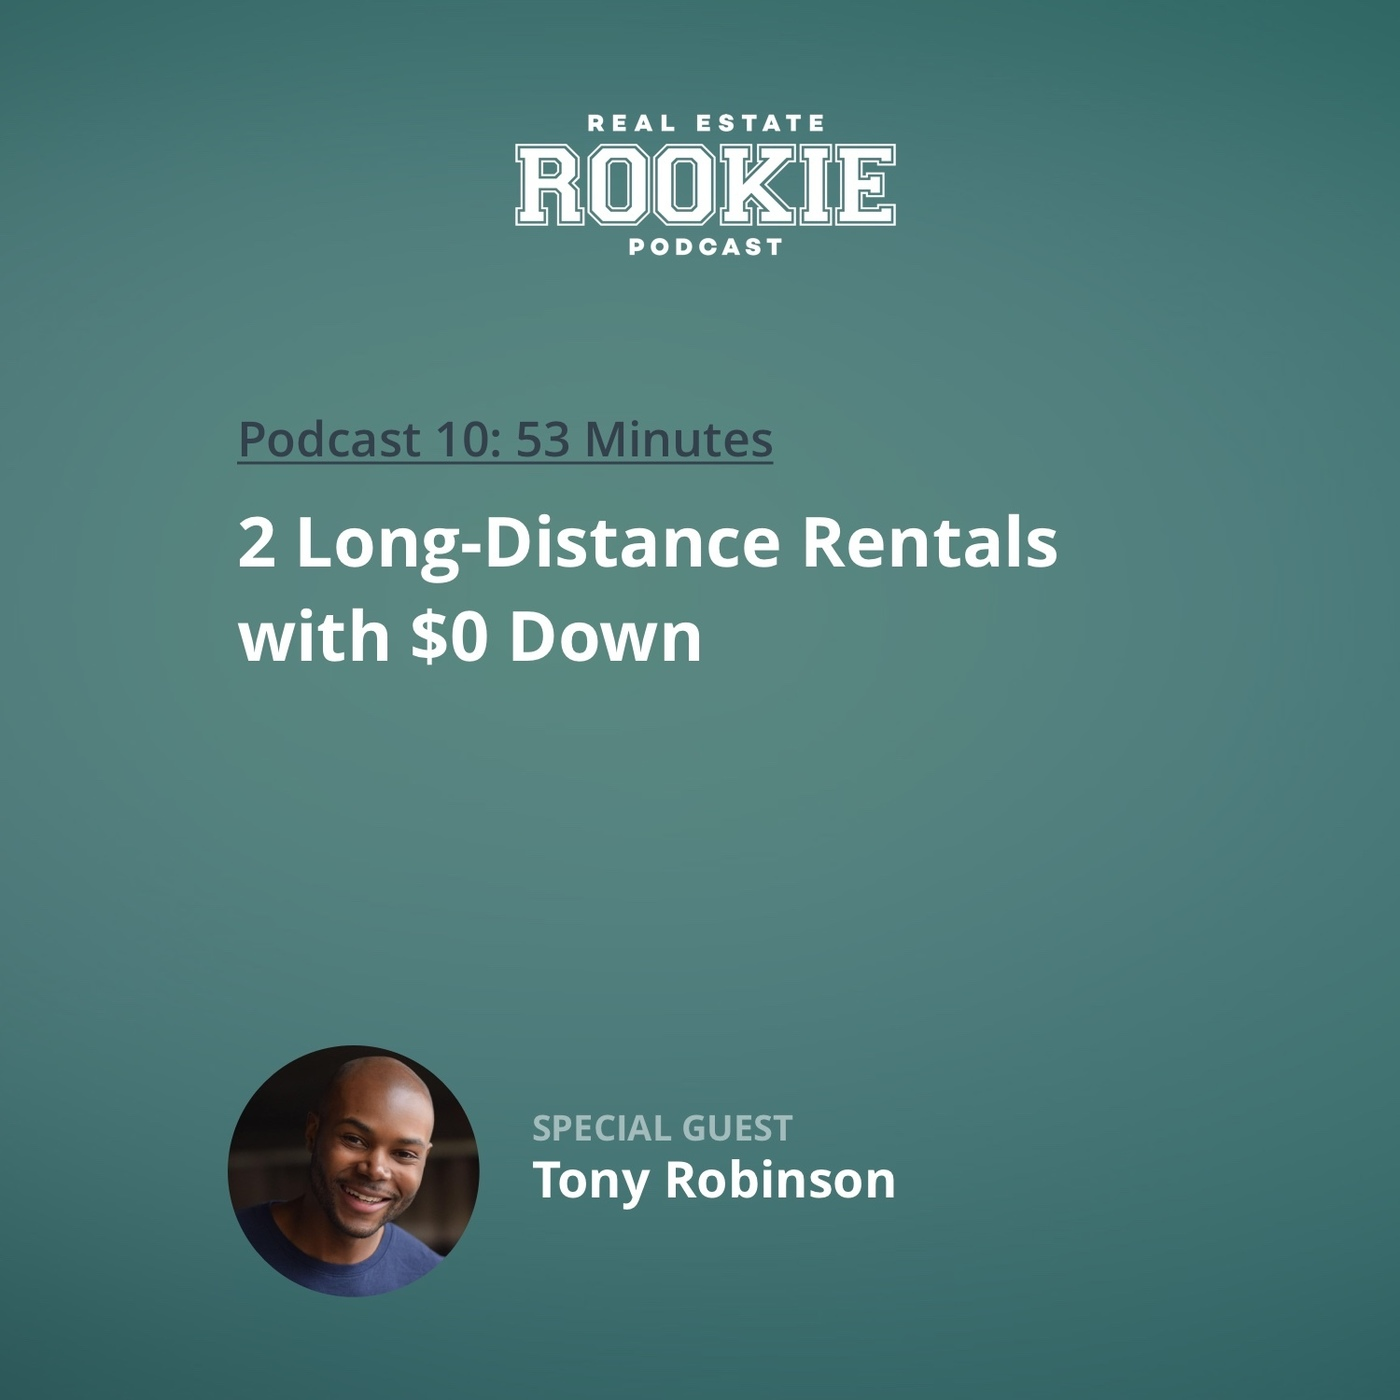 2 Long-Distance Rentals with $0 Down with Tony Robinson